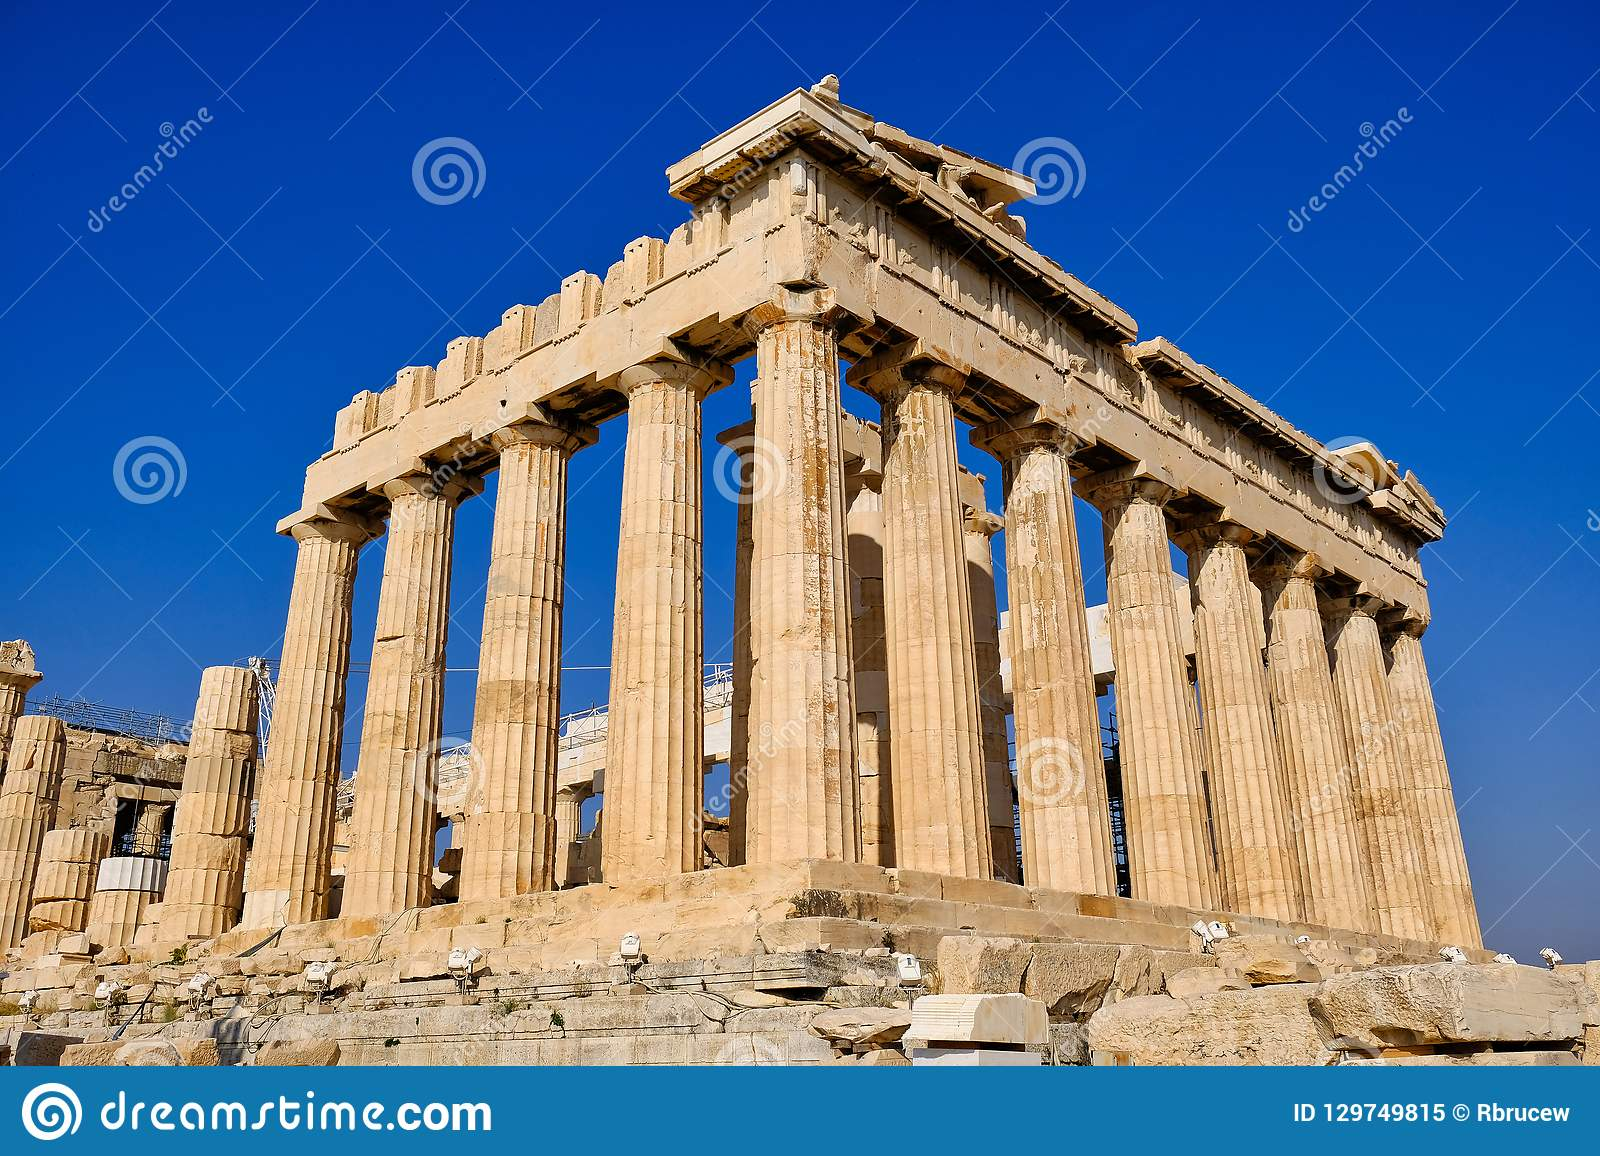 Temple of Athena, The Parthenon, Athens, Greece